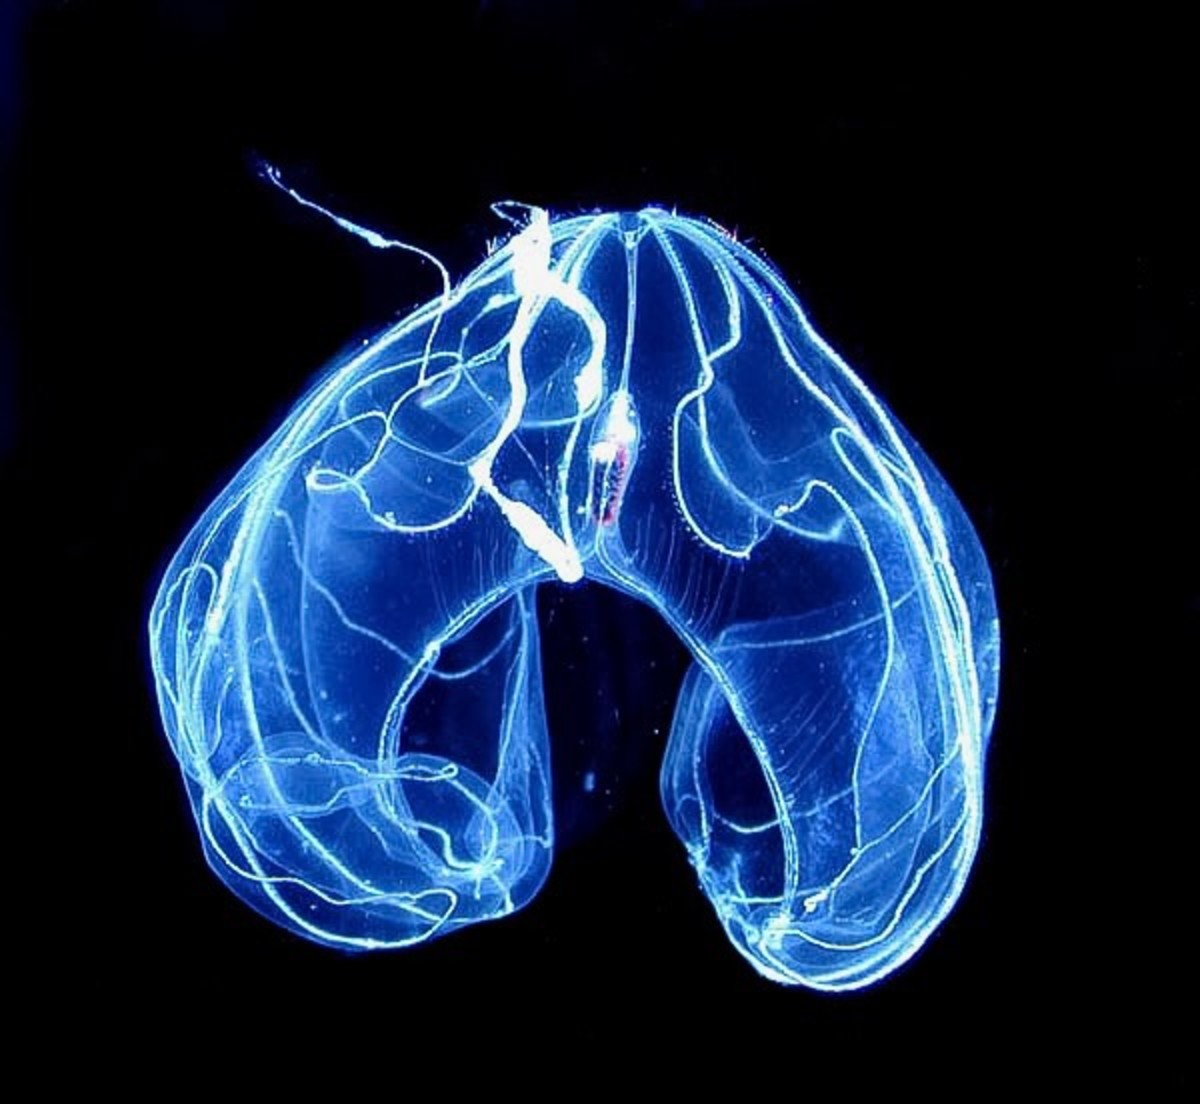 Bioluminescence: Light Emission and Function in Living Things